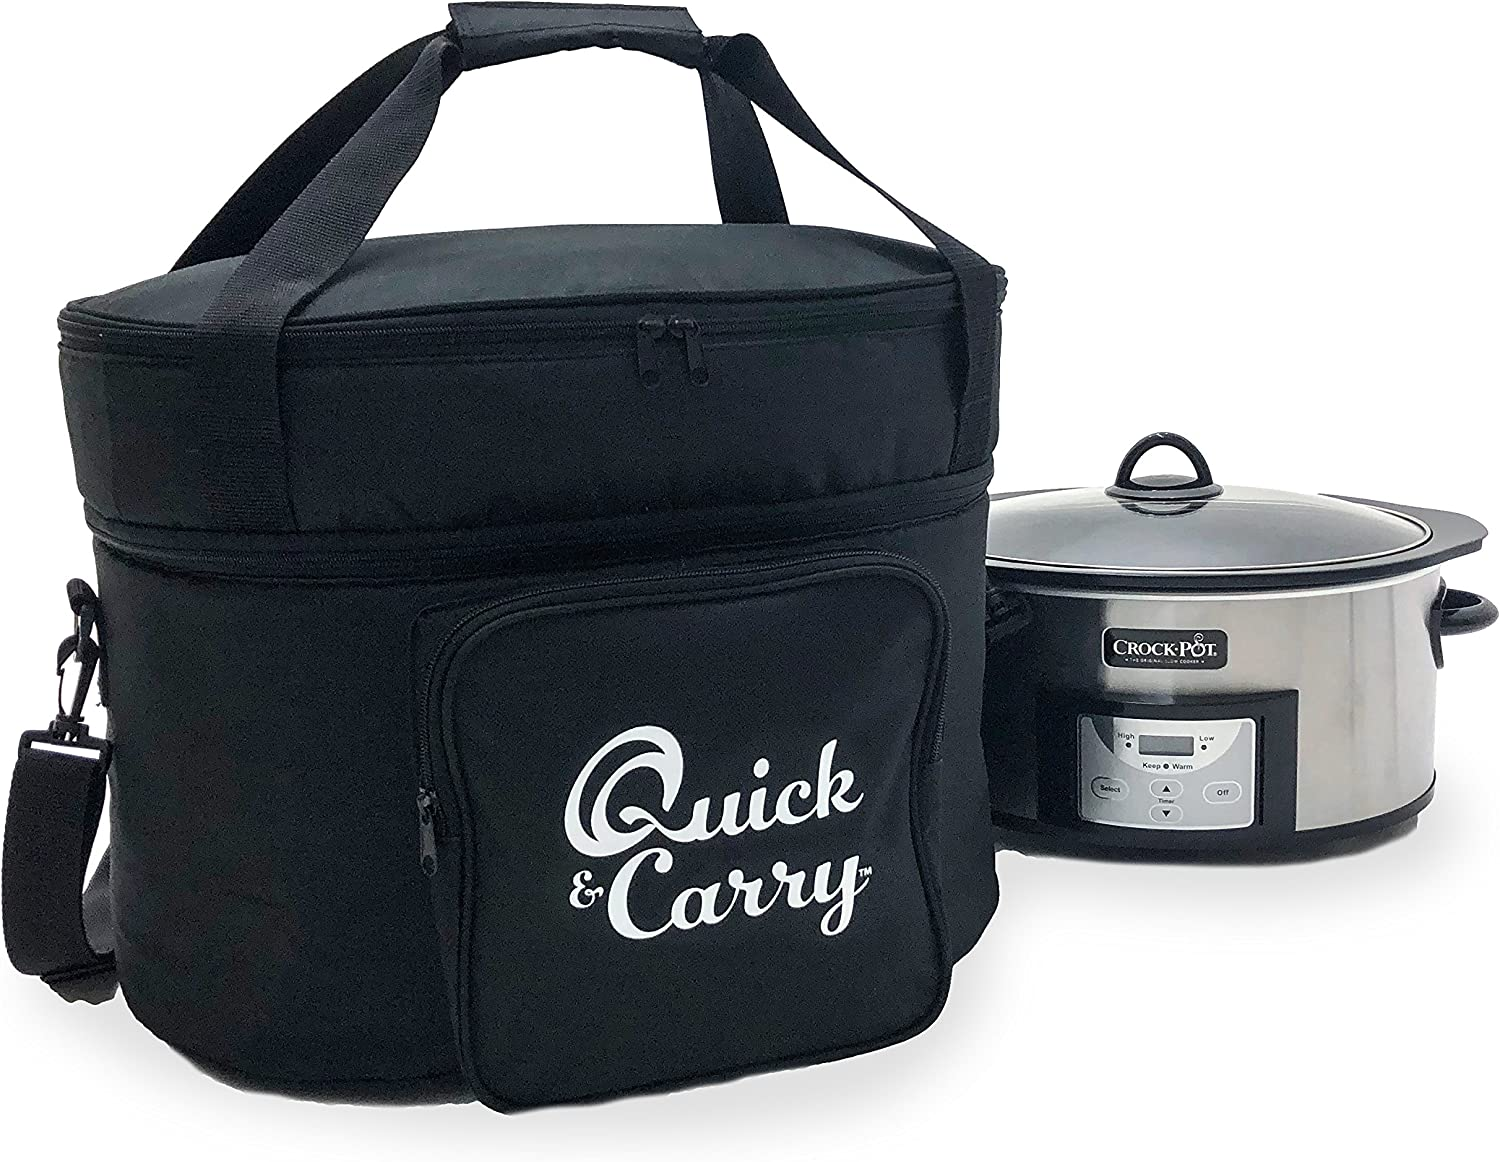 Quick & Carry, Slow Cooker Travel Tote Bag for